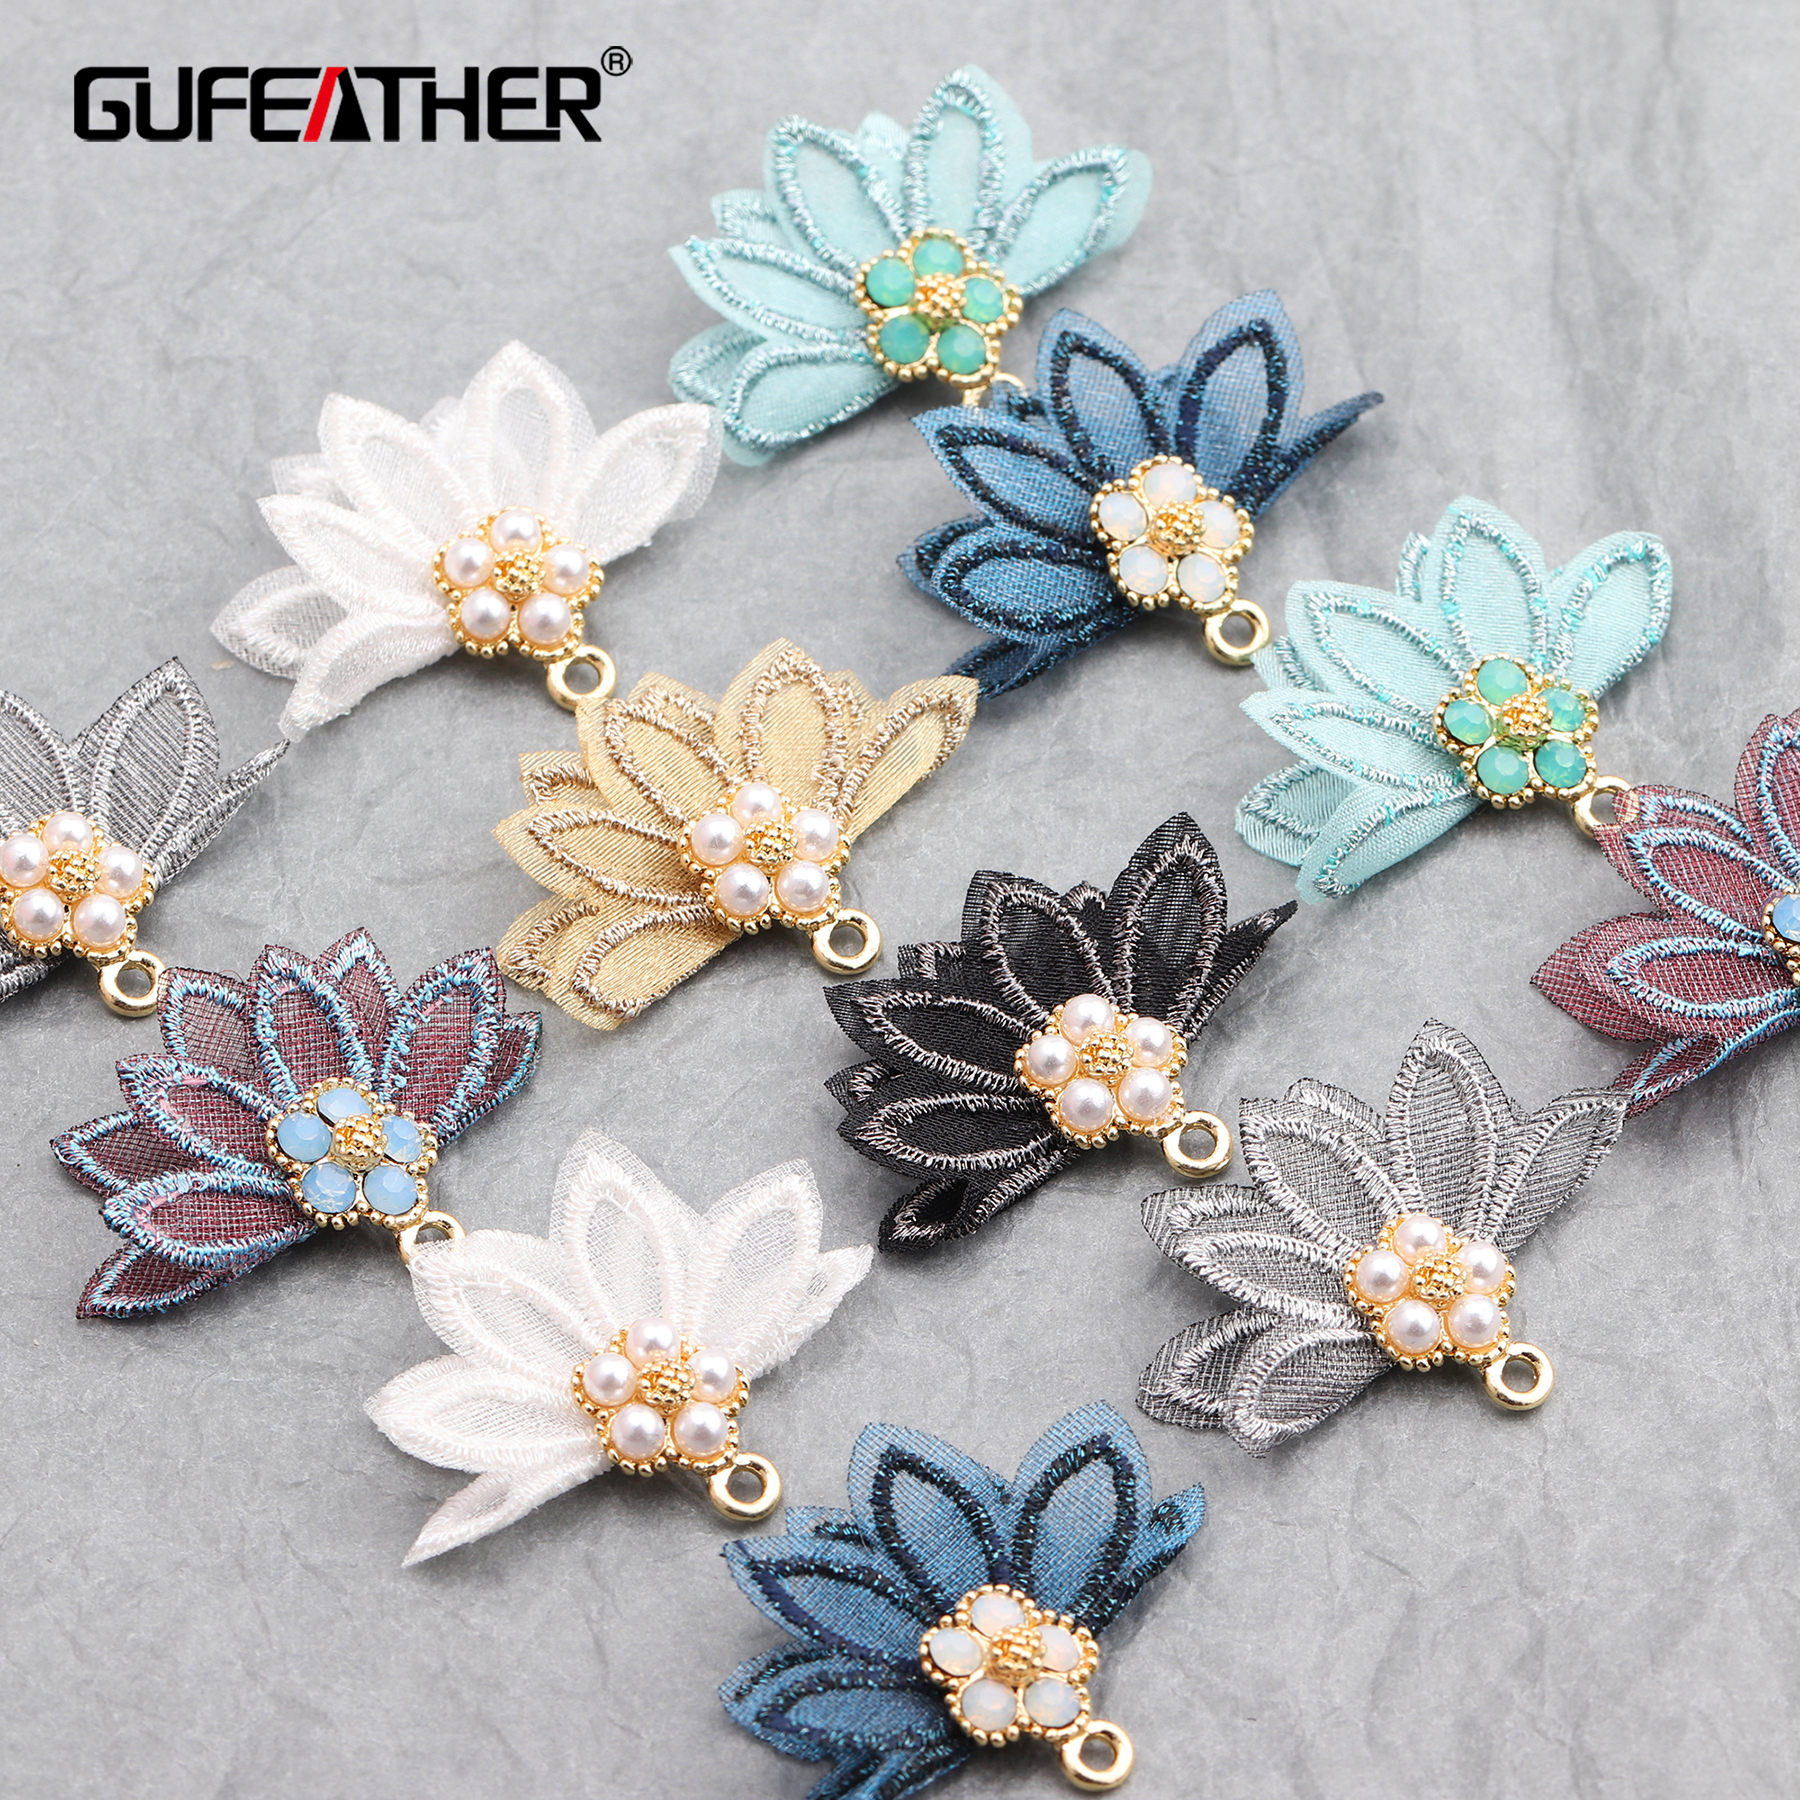 GUFEATHER M597,jewelry Accessories,tassels,flower,diy Pendant,jewelry Findings,hand Made,jewelry Making,diy Earrings,10pcs/lot